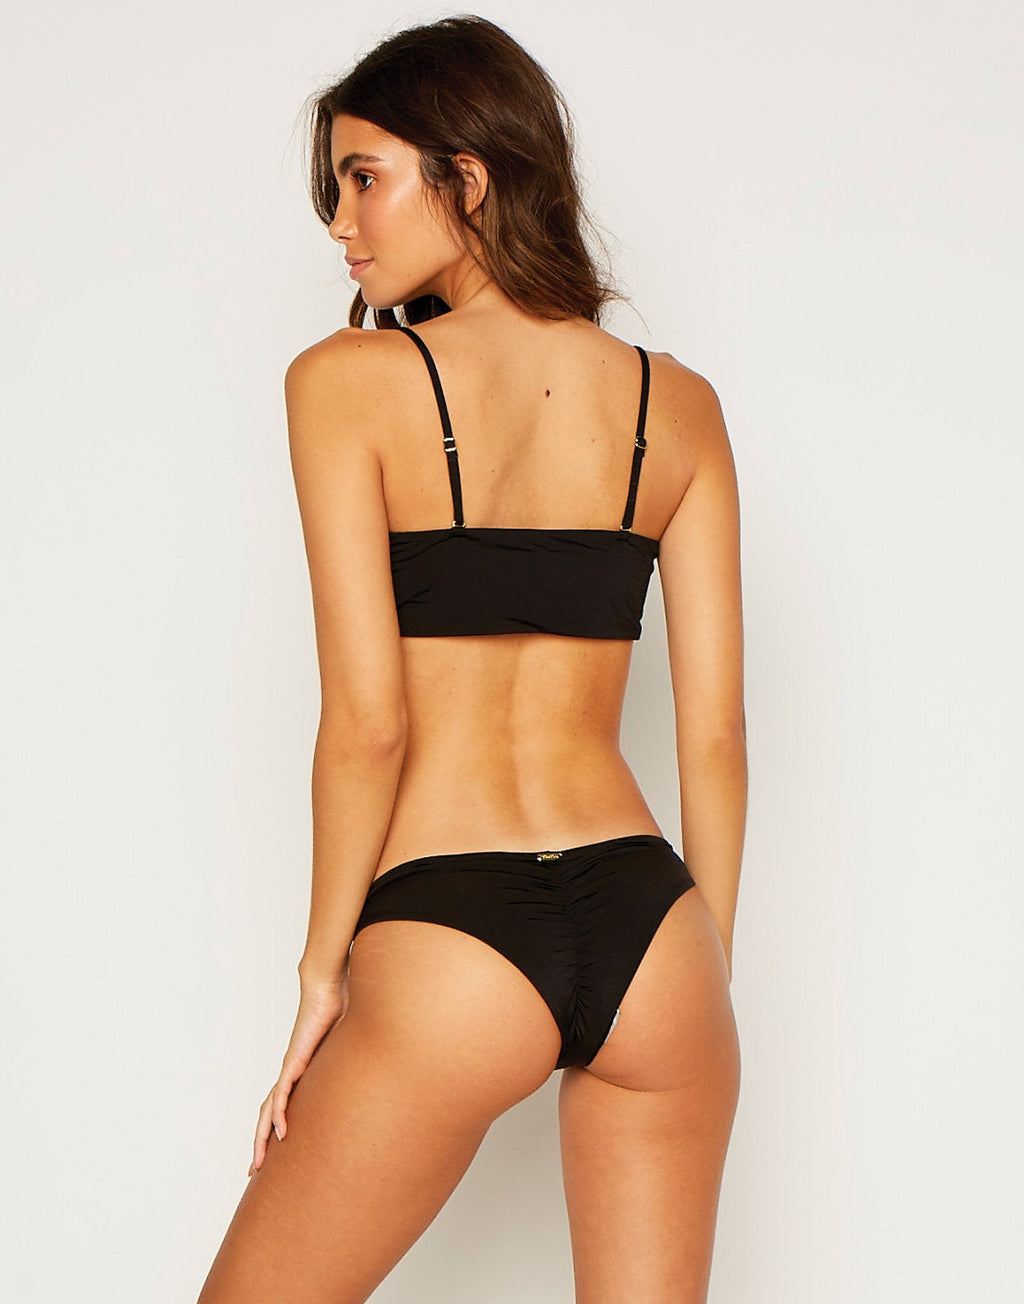 Angela Skimpy Bikini Bottom in Black - Back View ?id=13939181125763